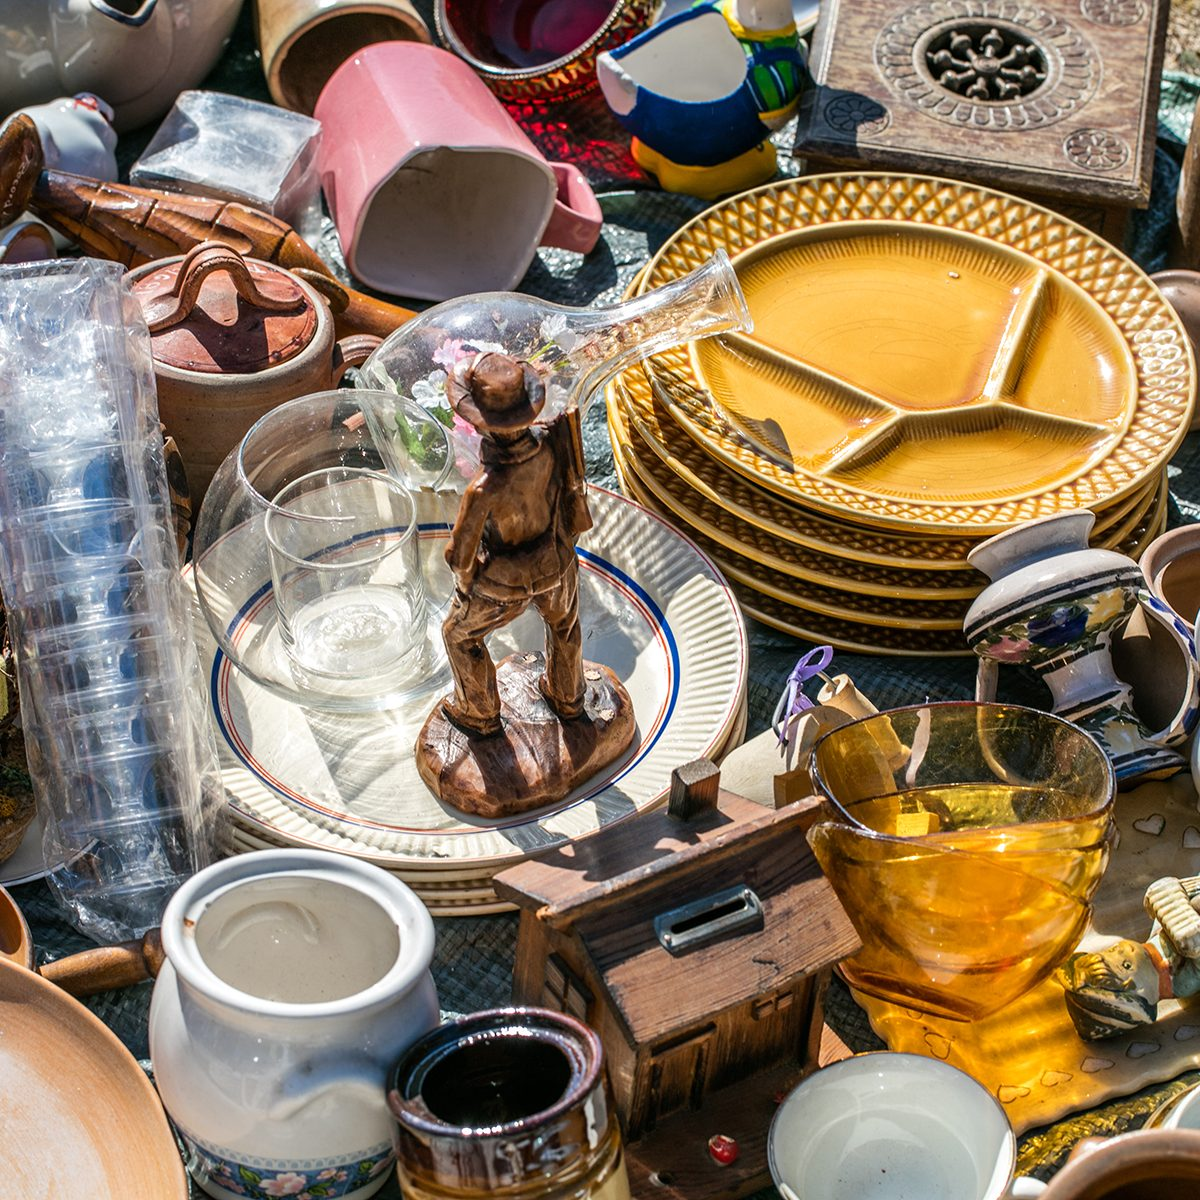 pile of household things, various dishes and decorative objects at boot sale for second hand, recycling or over-consumption society at outdoor welfare